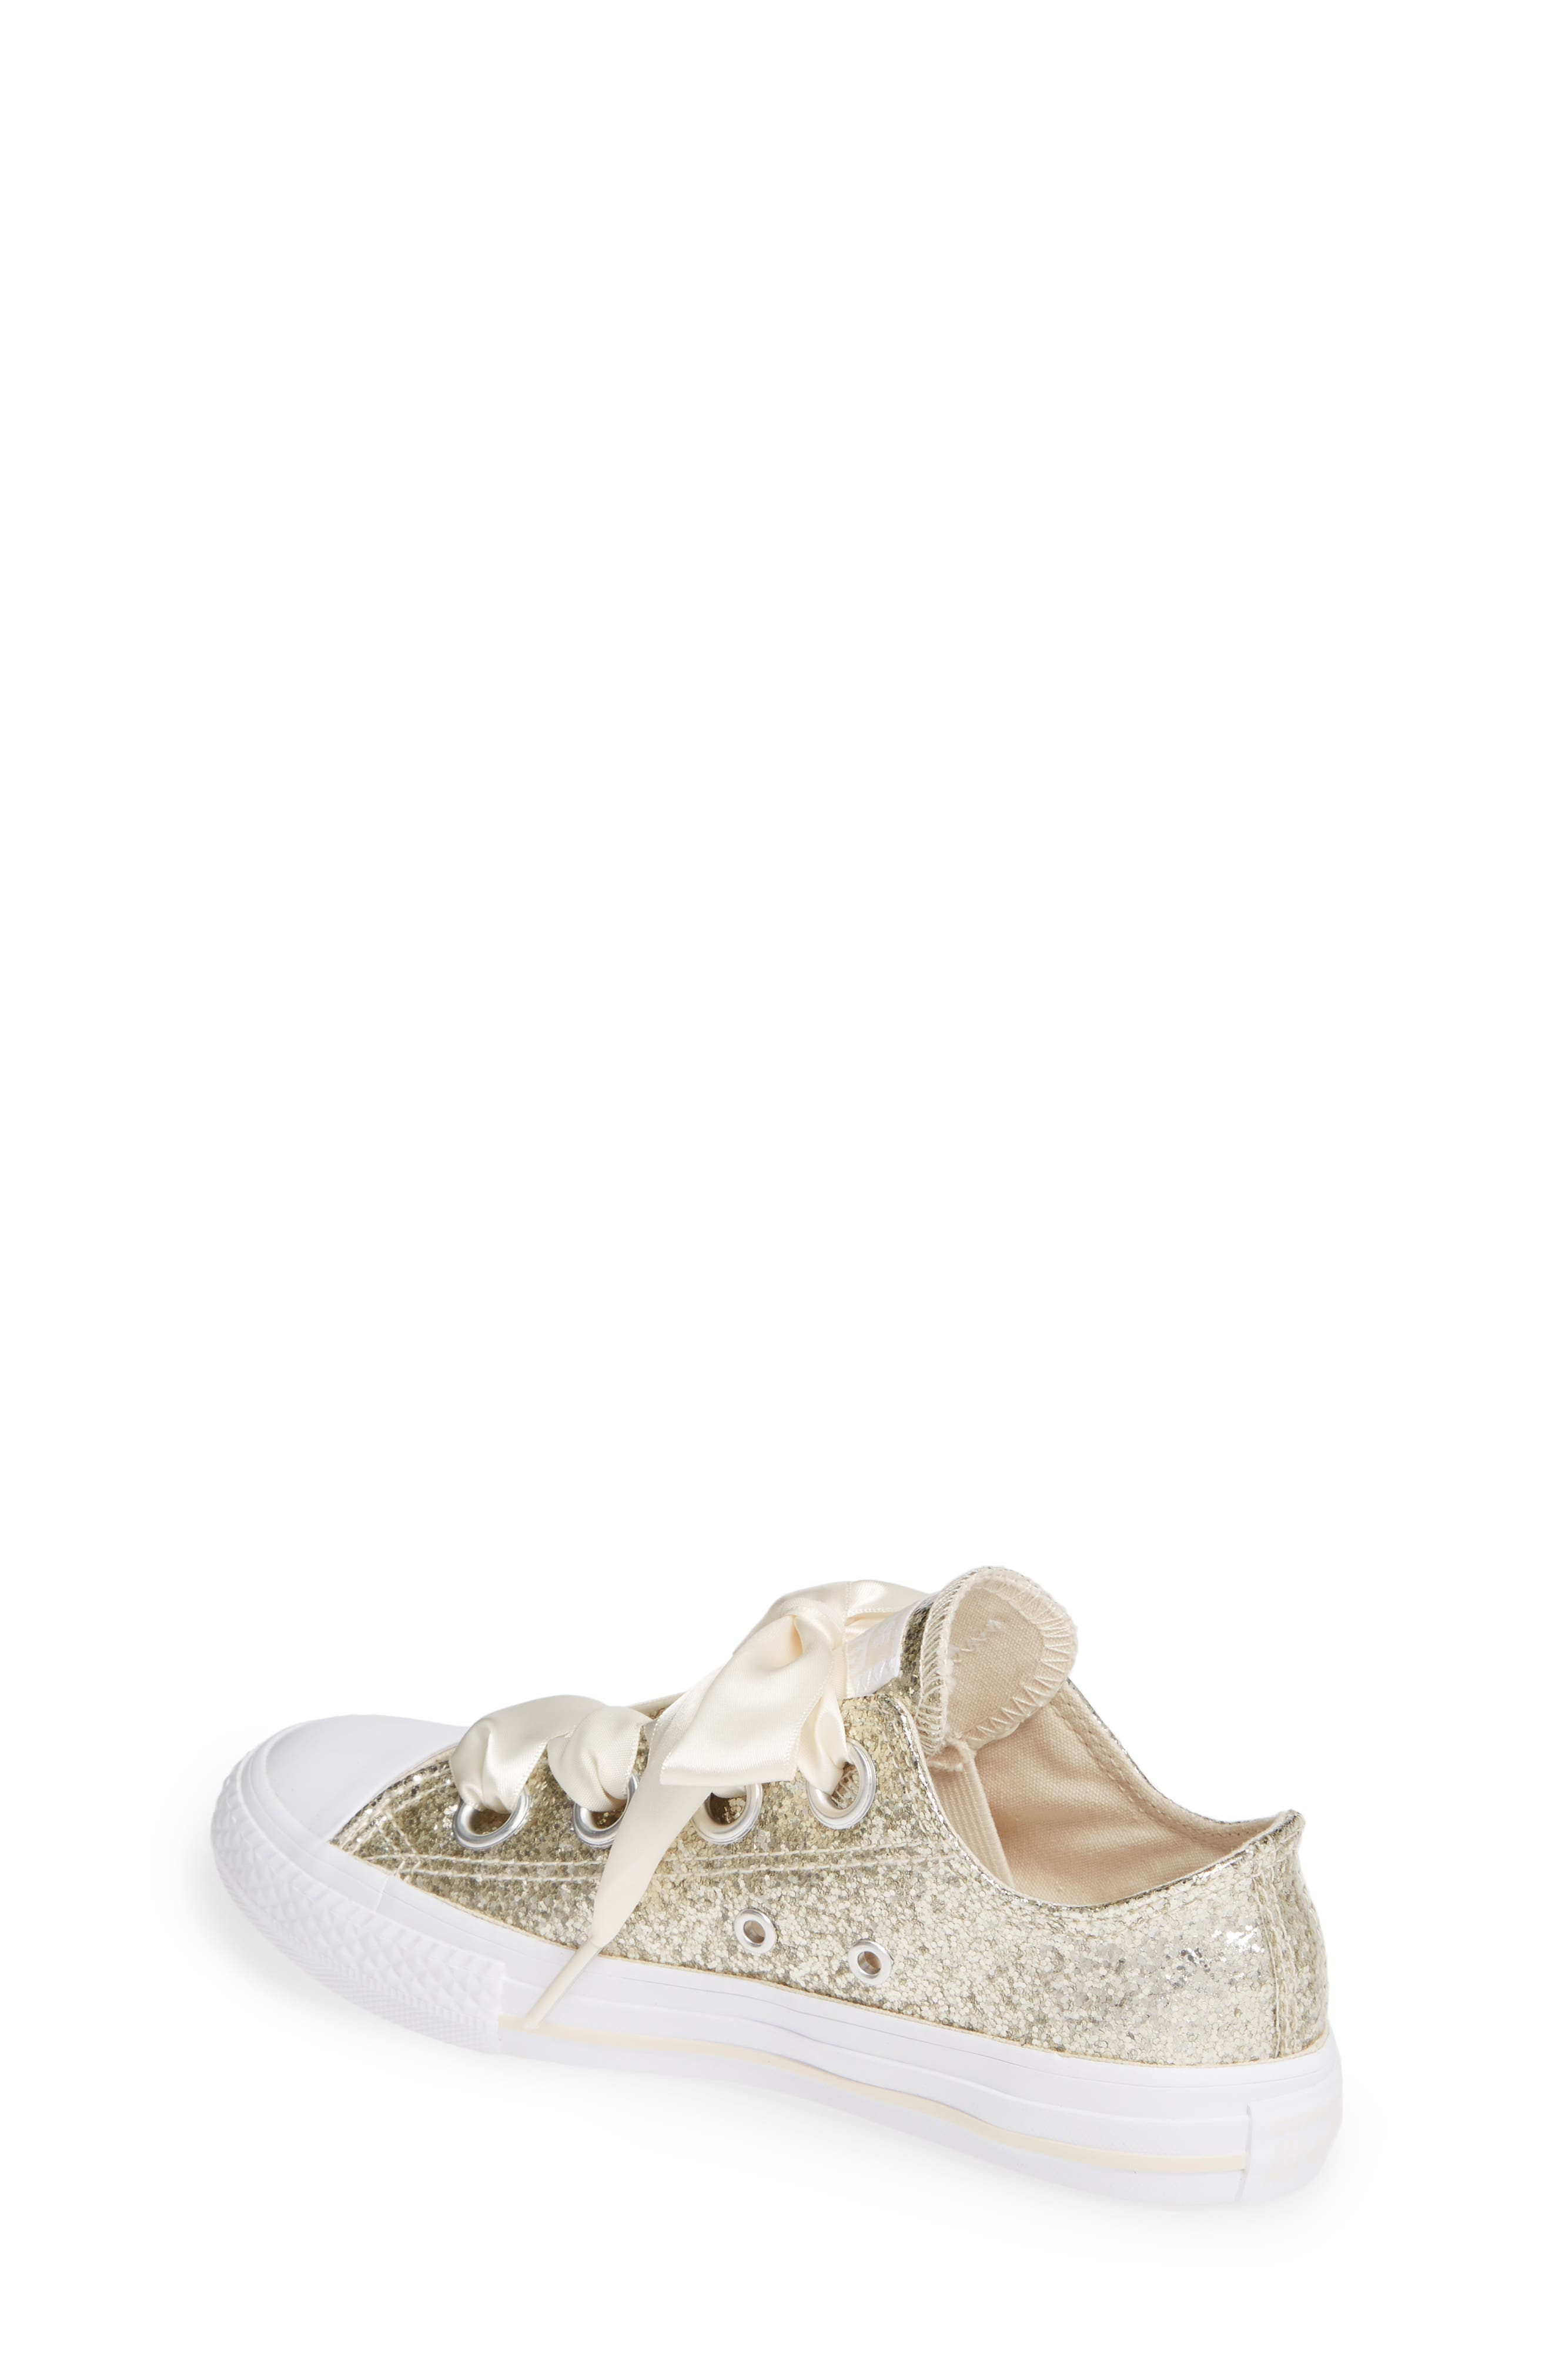 Chuck Taylor<sup>®</sup> All Star<sup>®</sup> Glitter Big Eyelet Ox Sneaker,                             Alternate thumbnail 2, color,                             NATURAL IVORY